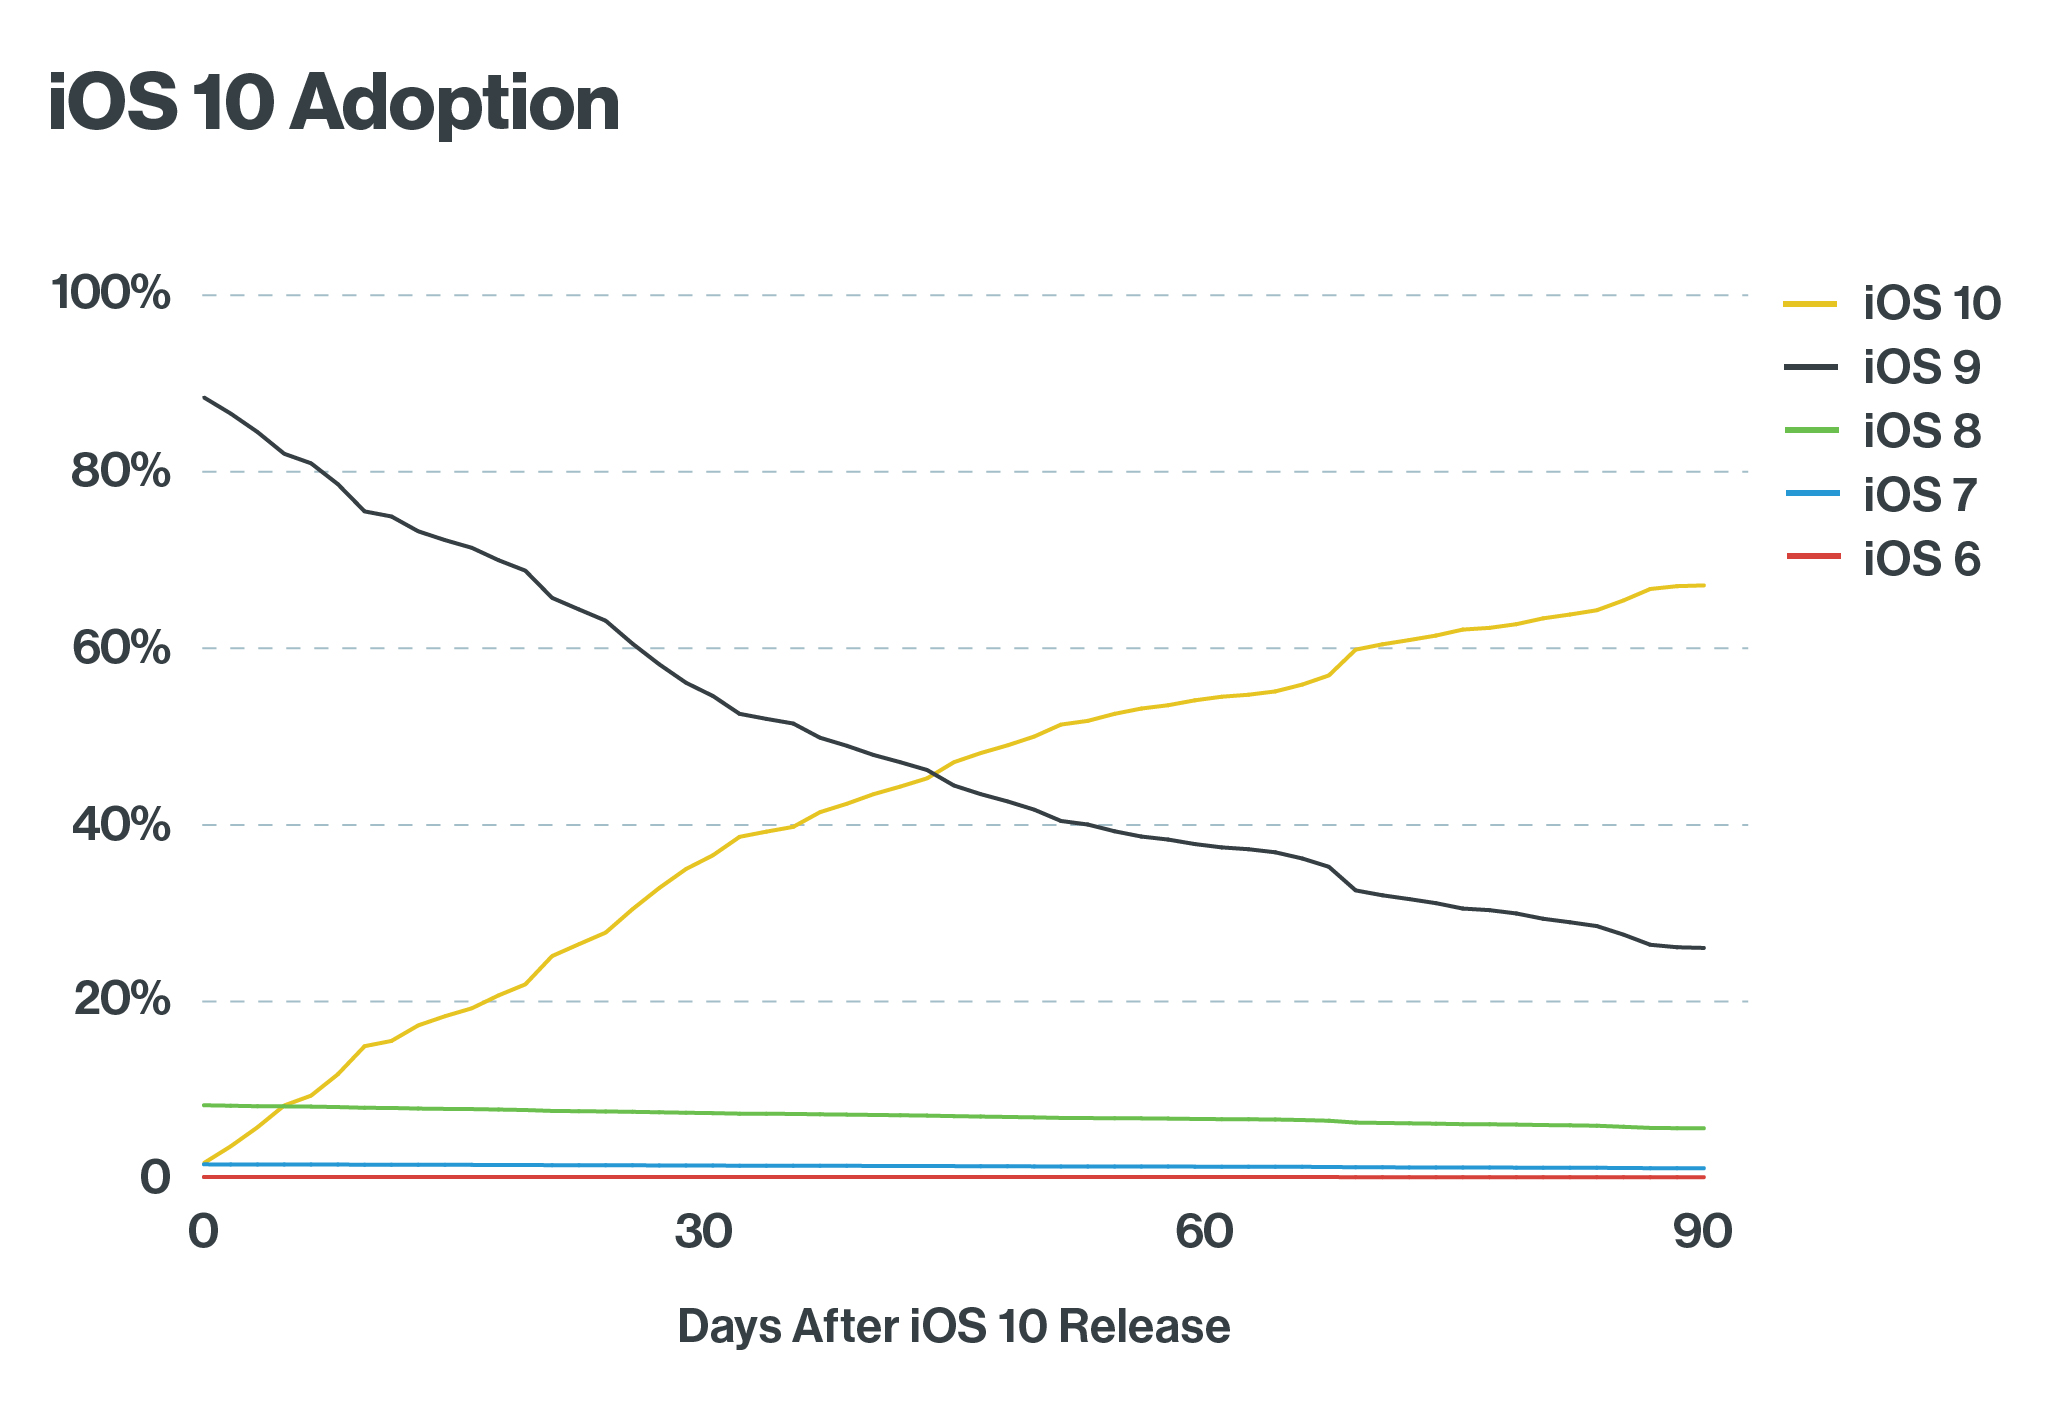 iOS 10.1 vs. 10.0 Adoption